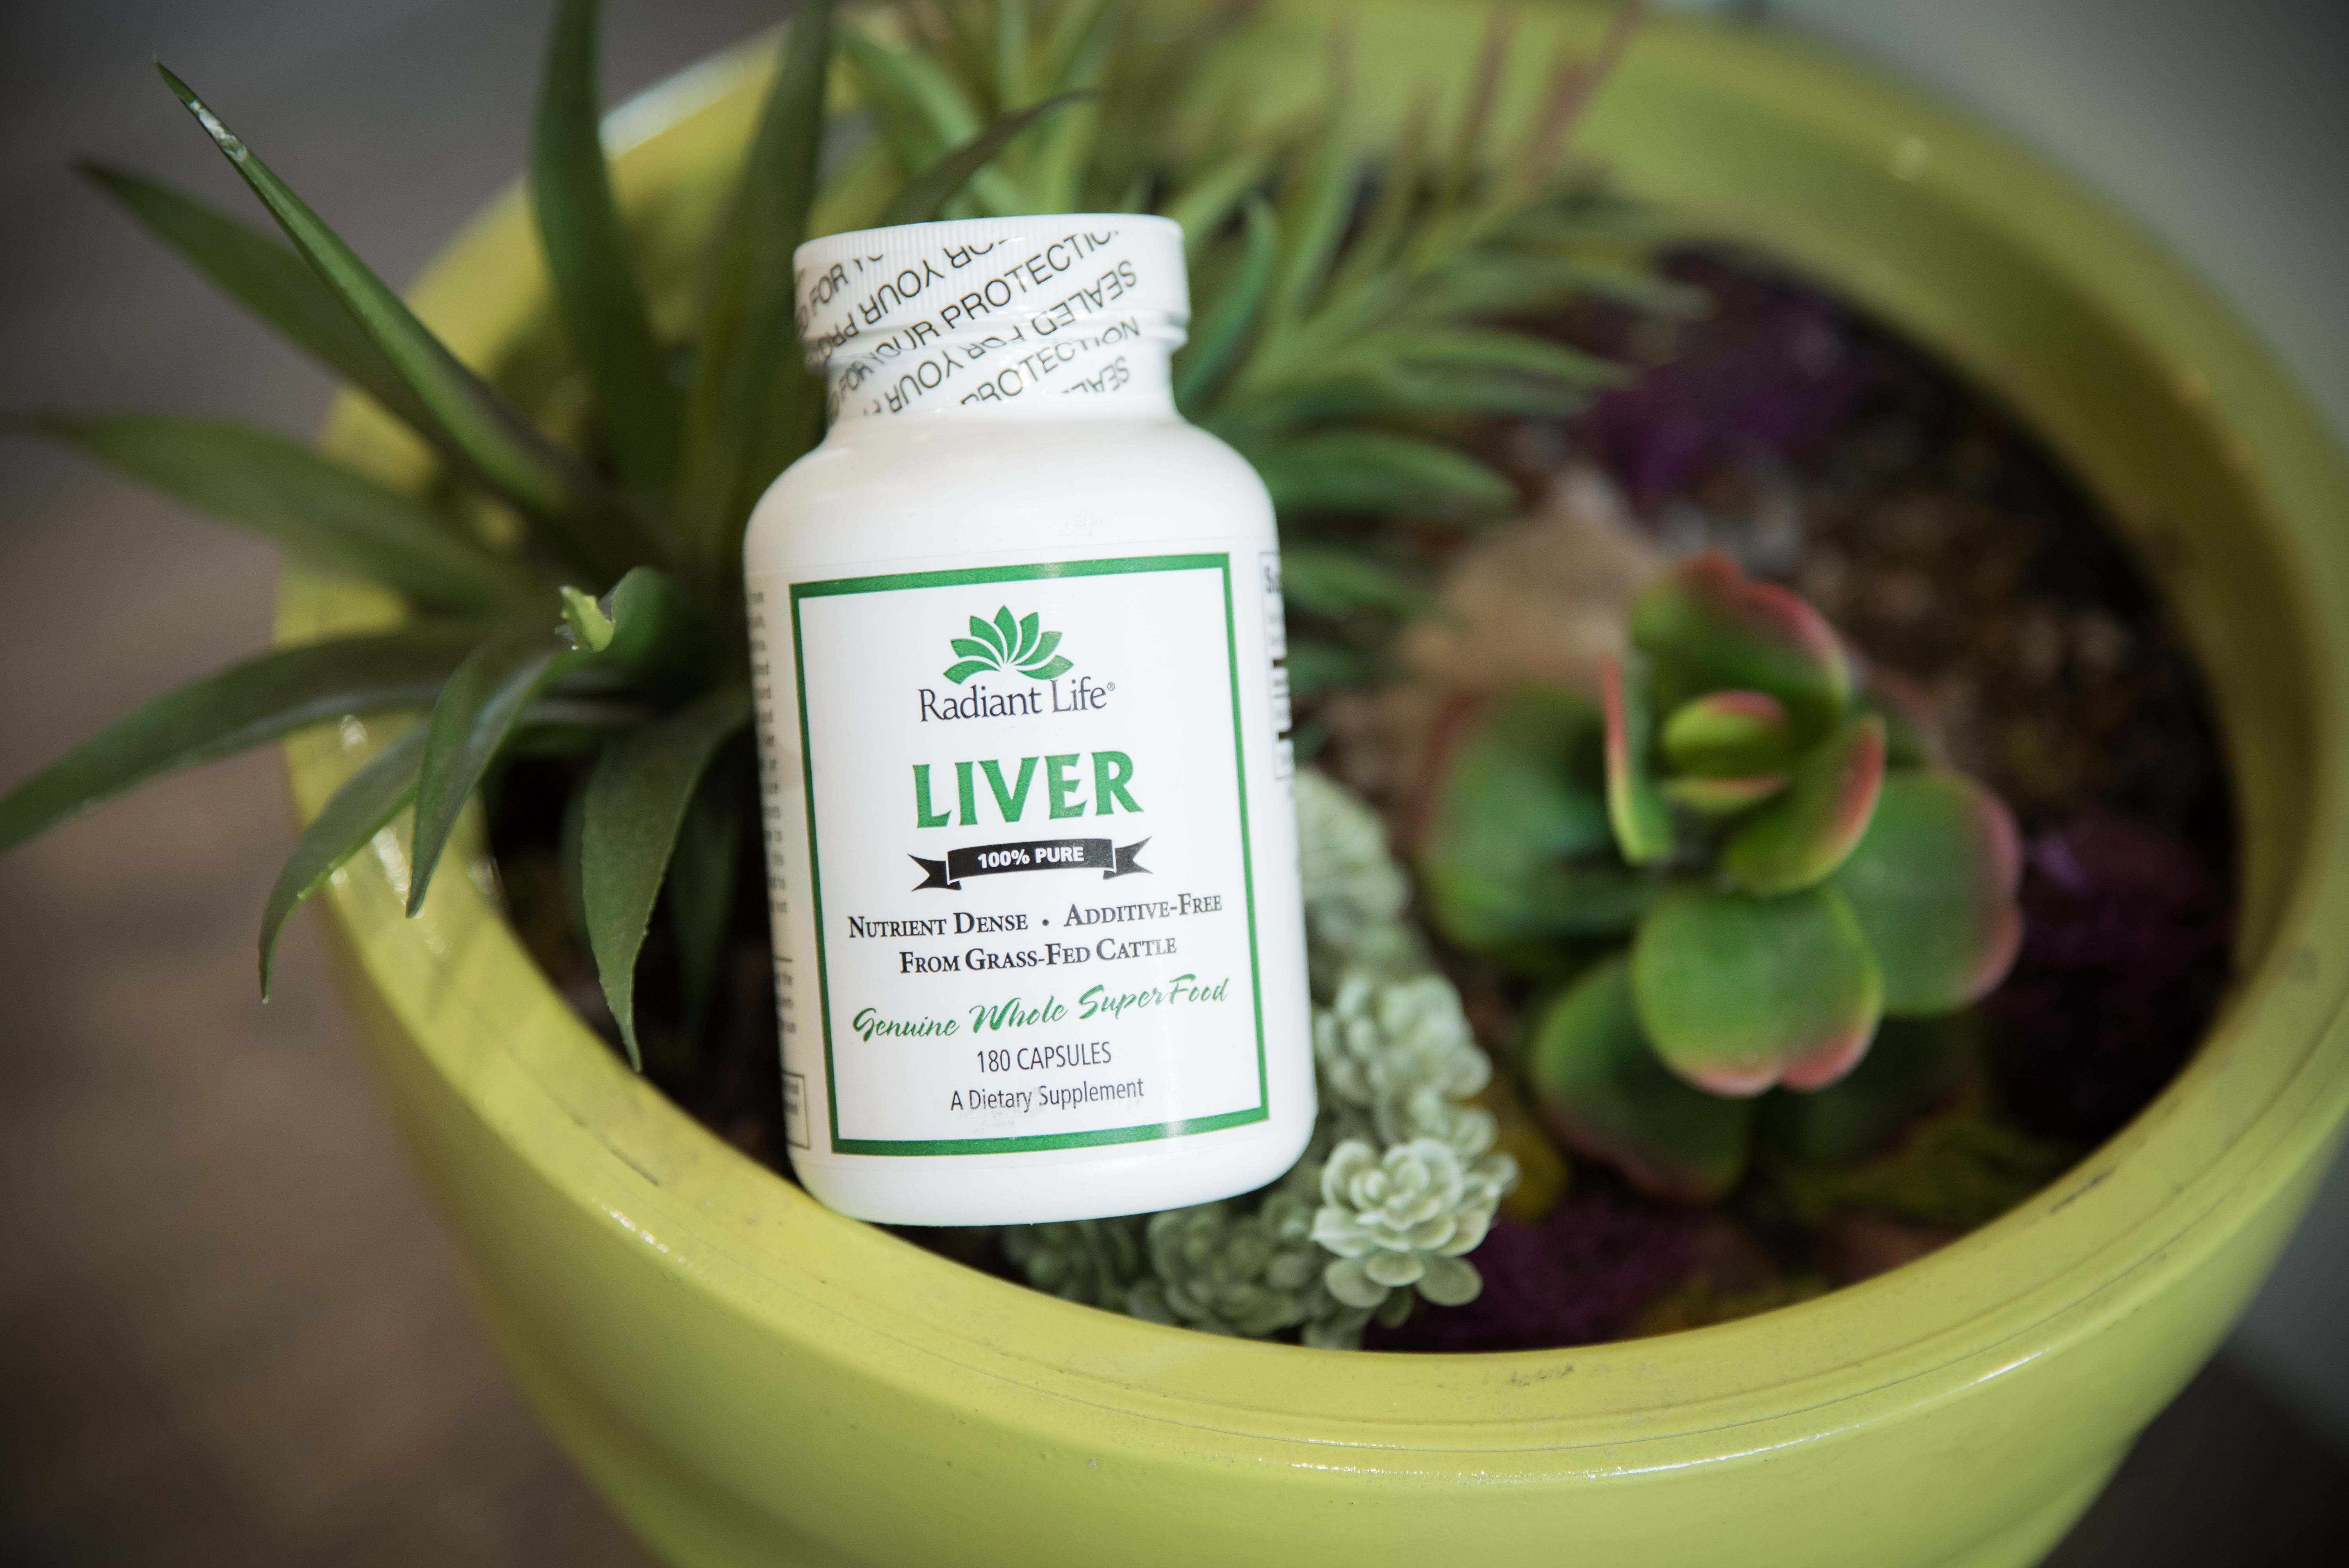 Chinese Herbal Medicine & Nutritional Supplements